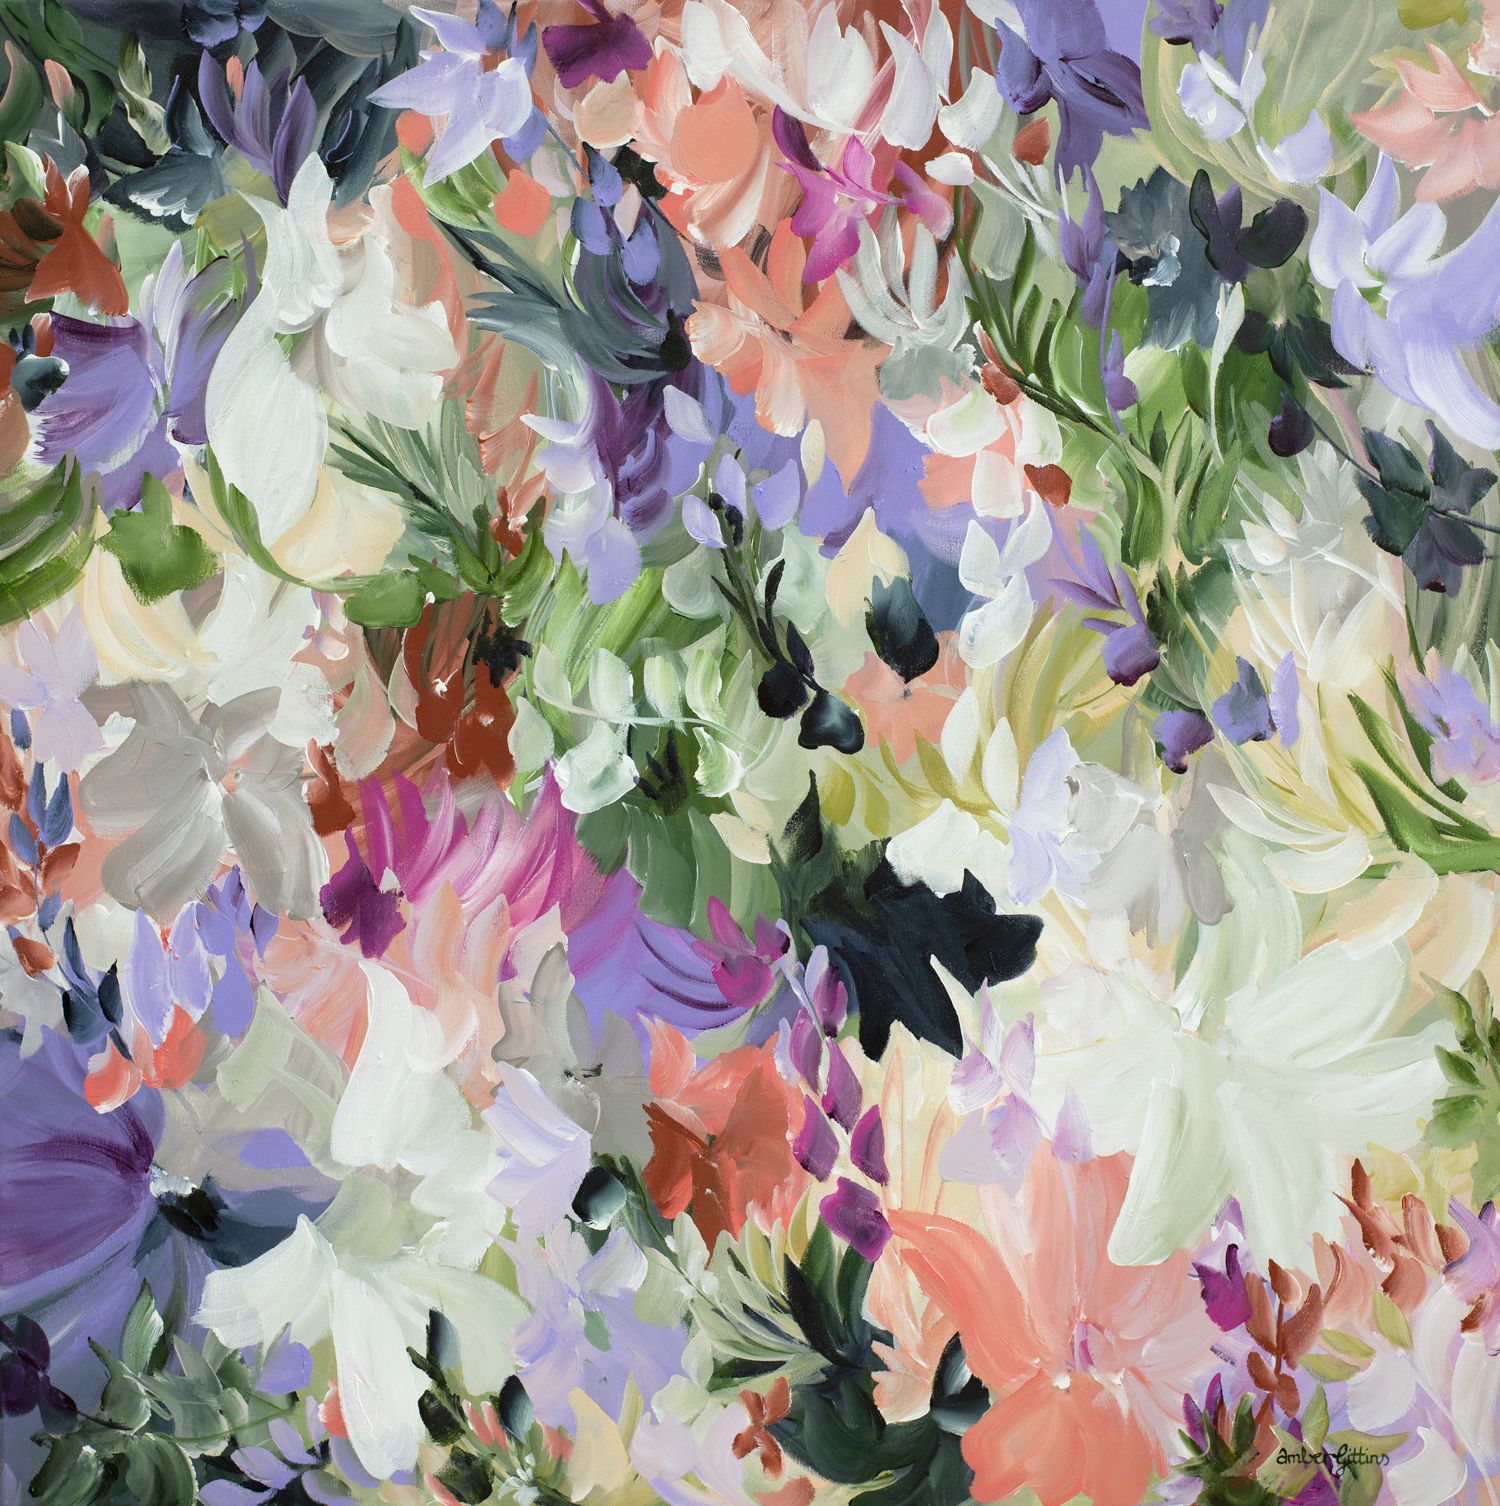 Floral Obsession Floral Abstract Painting